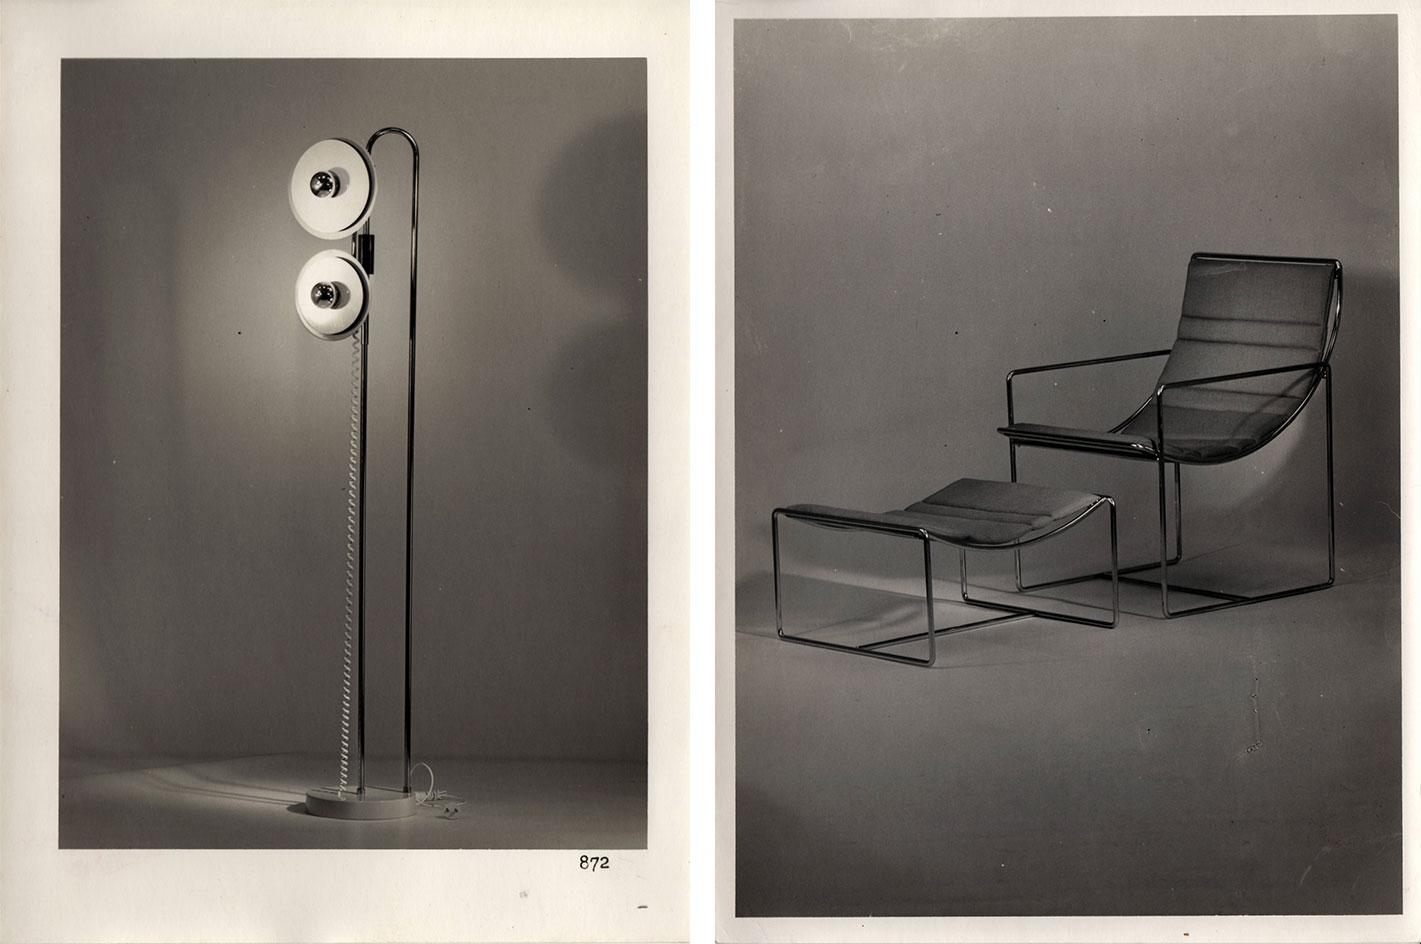 Two black and white photographs showing original models of a lamp (left) with a chrome base and two eye-like lights, and a chair with ottoman (right) with chrome structure and fabric seats